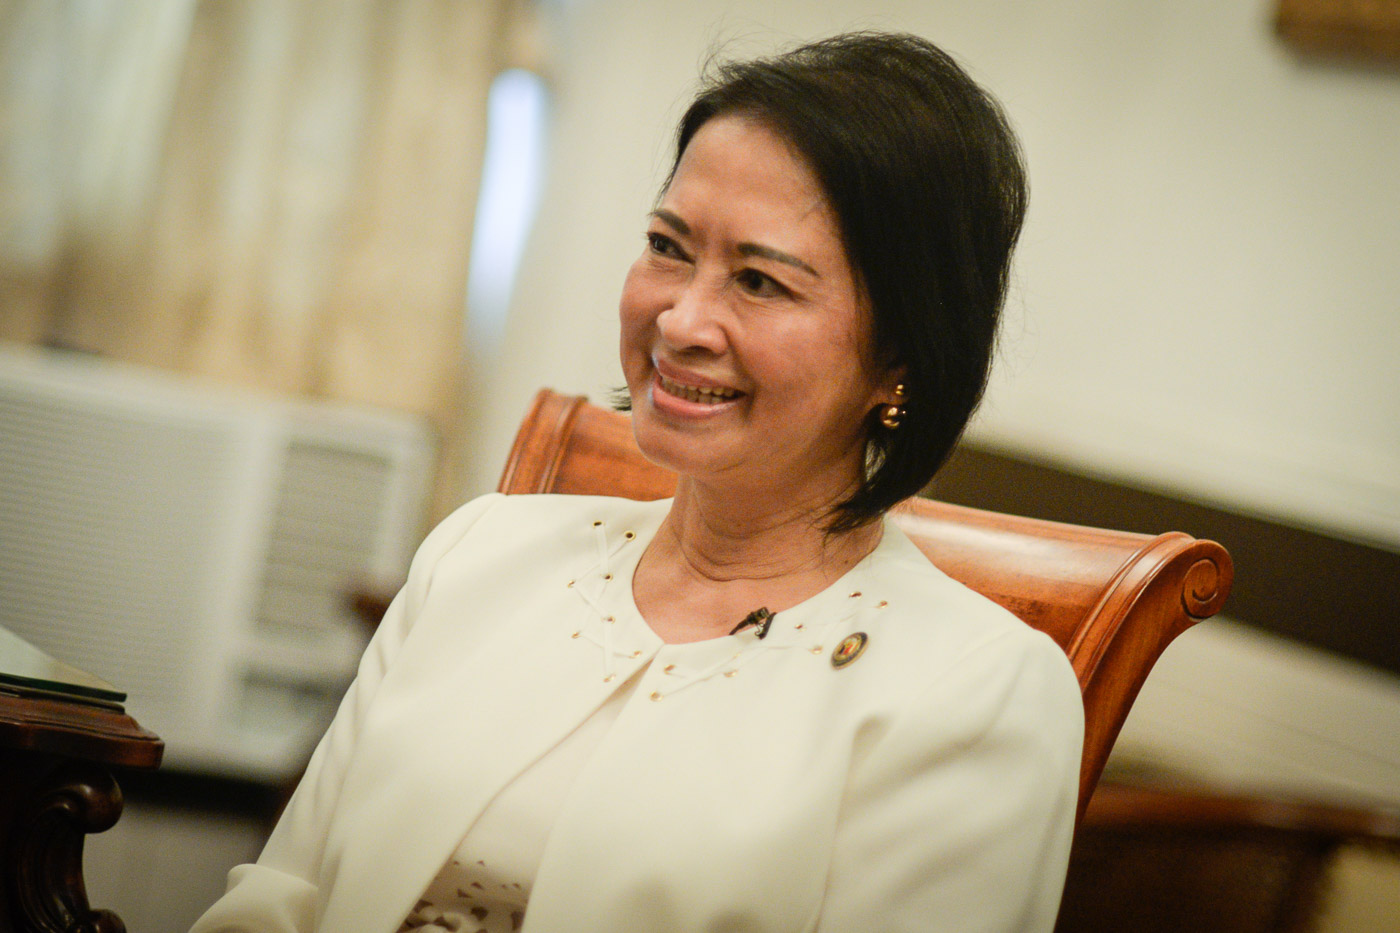 HATERS AND POLITICS. For Sato, receiving criticism is all part of her job as a lawmaker. Photo by LeAnne Jazul/Rappler